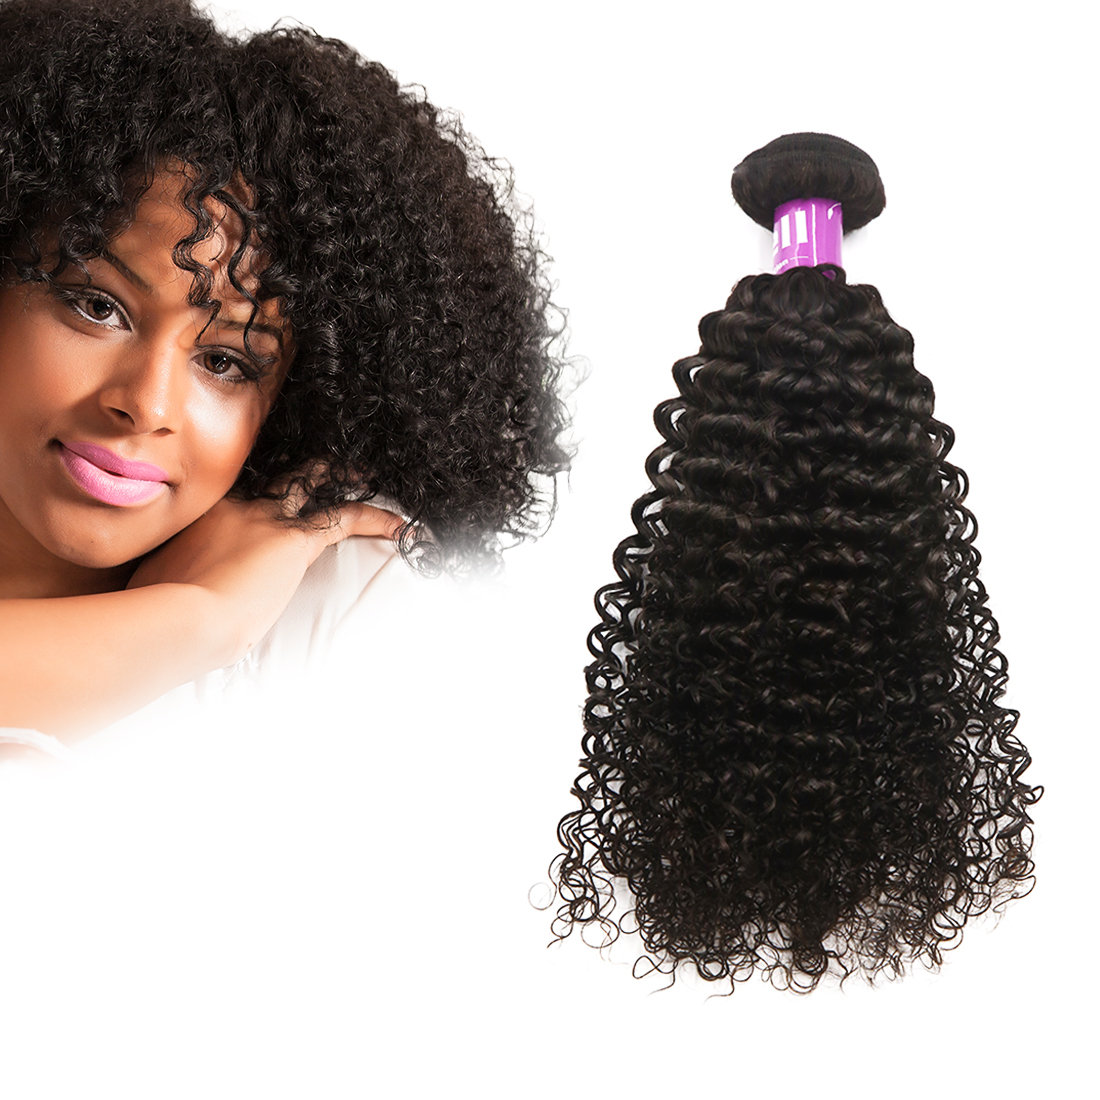 "Peruvian Unprocessed Virgin Jerry Curly Human Hair Extensions Wave 30"" 1 Bundle"